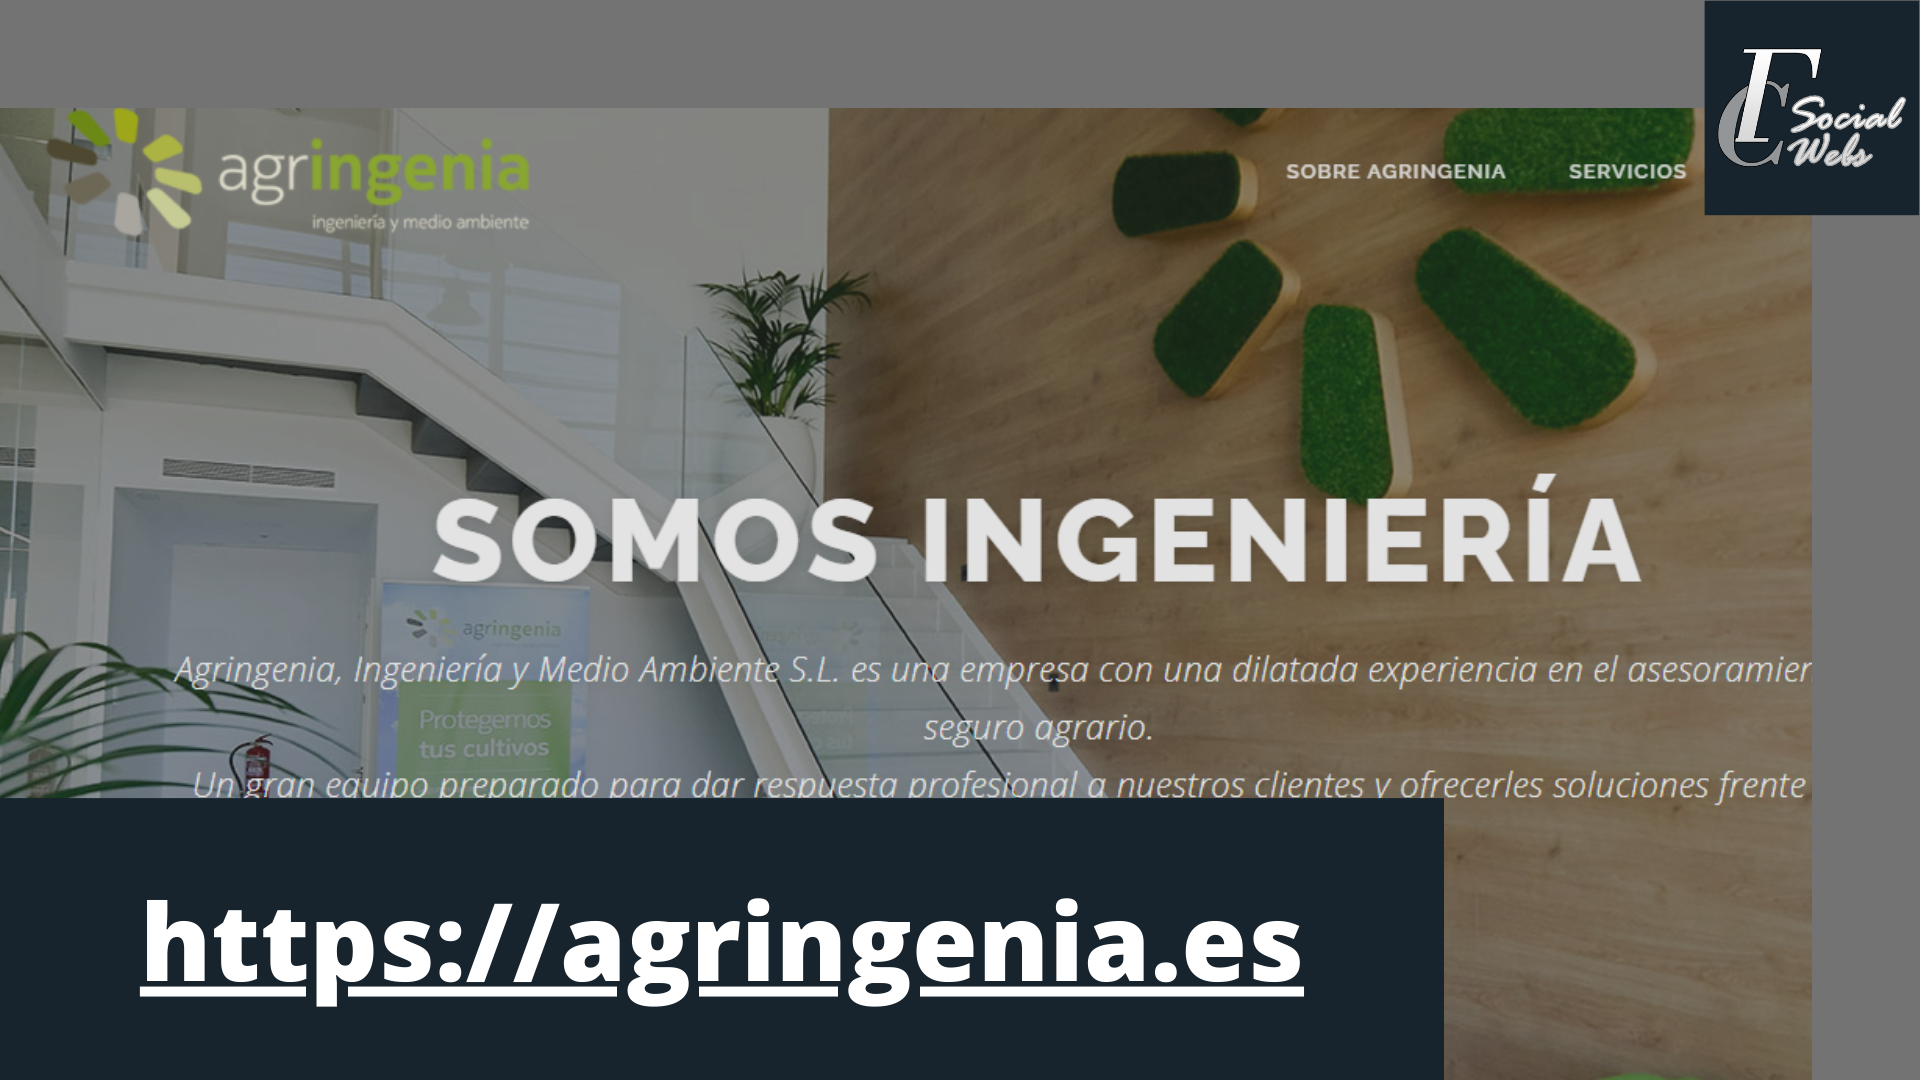 Green and White Corporate Technology Pitch Deck Presentation Diseño de Páginas web